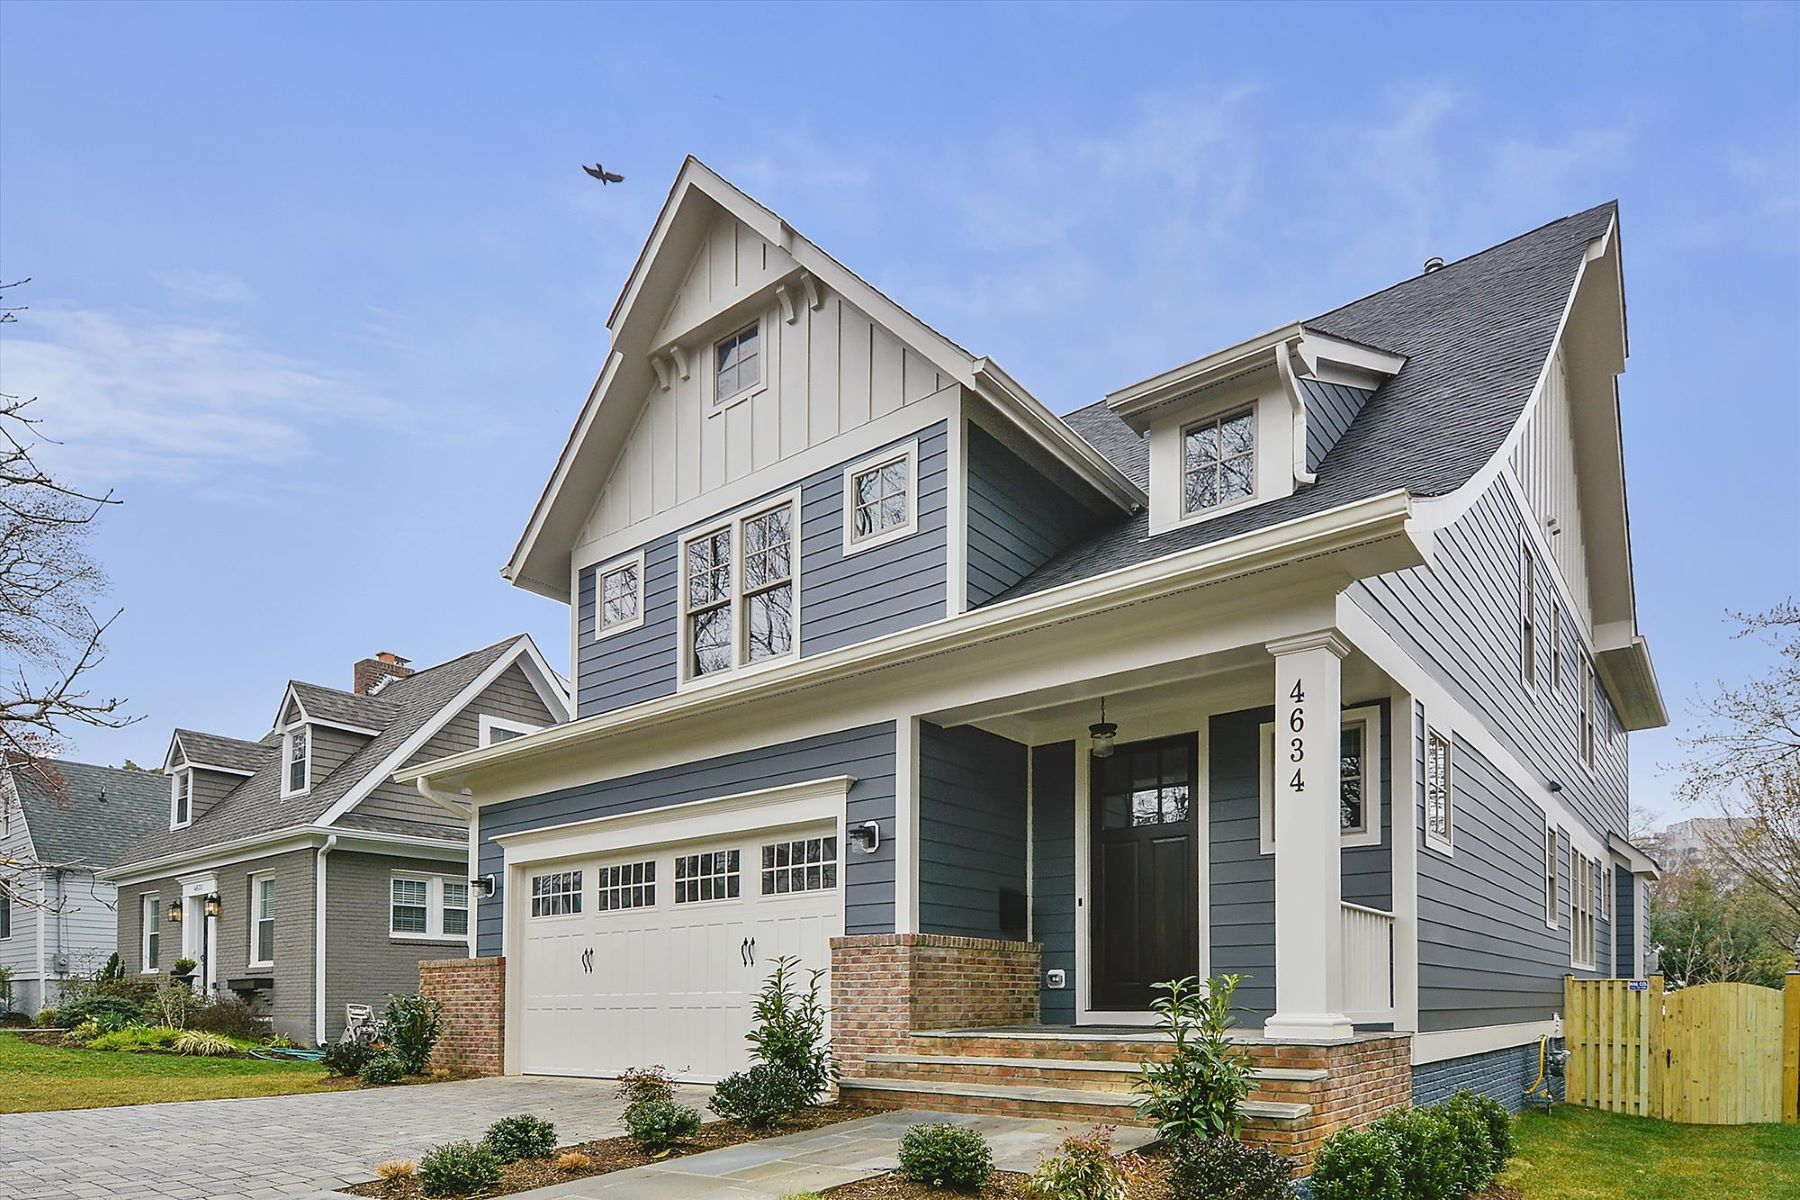 Single Family Homes for Active at Stunning Home By Springstreet Development 4634 14th St N Arlington, Virginia 22207 United States